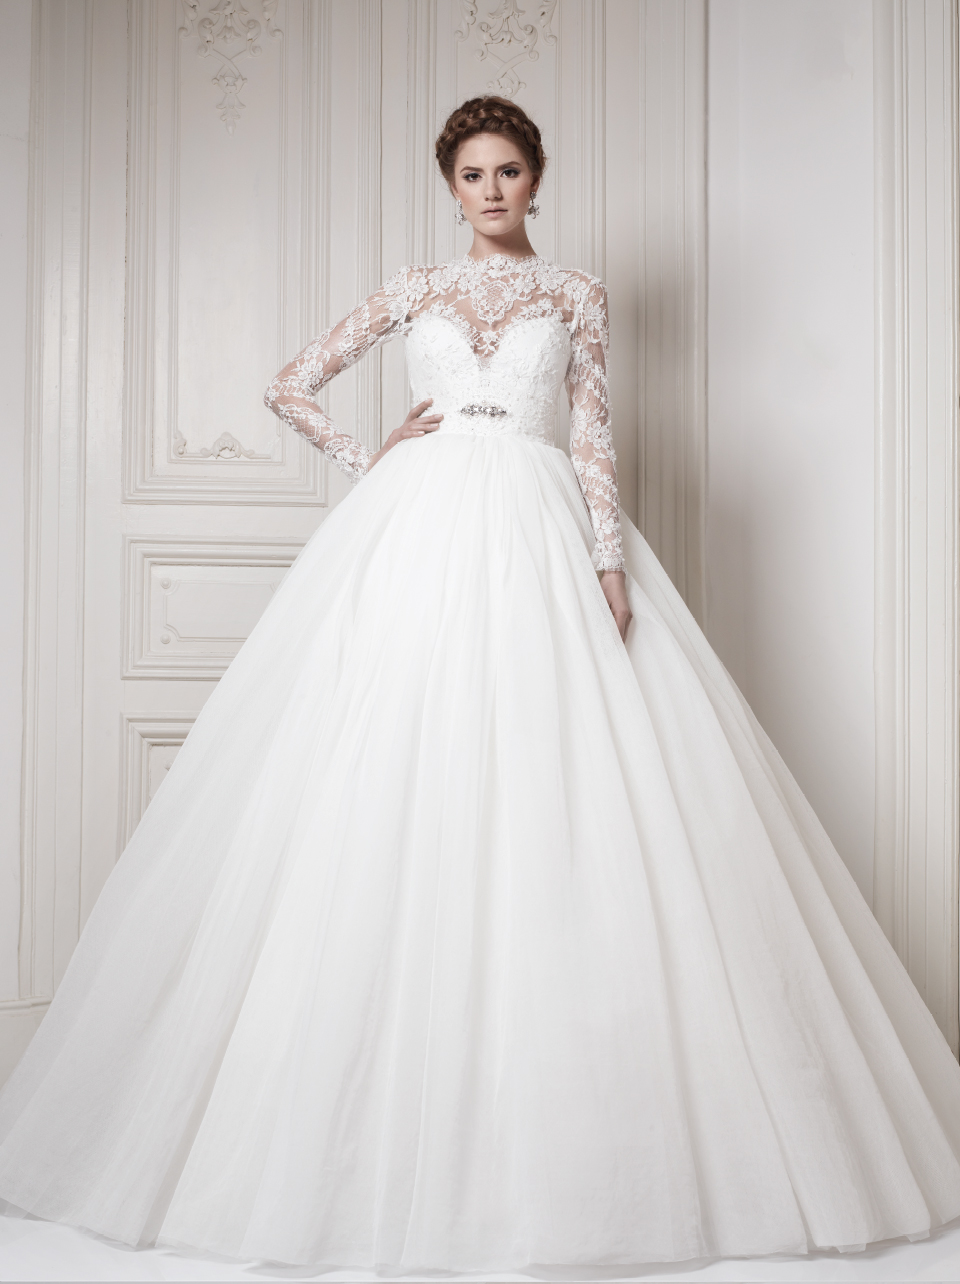 Glamorous ersa atelier wedding dresses 2014 collection for Ersa atelier wedding dress